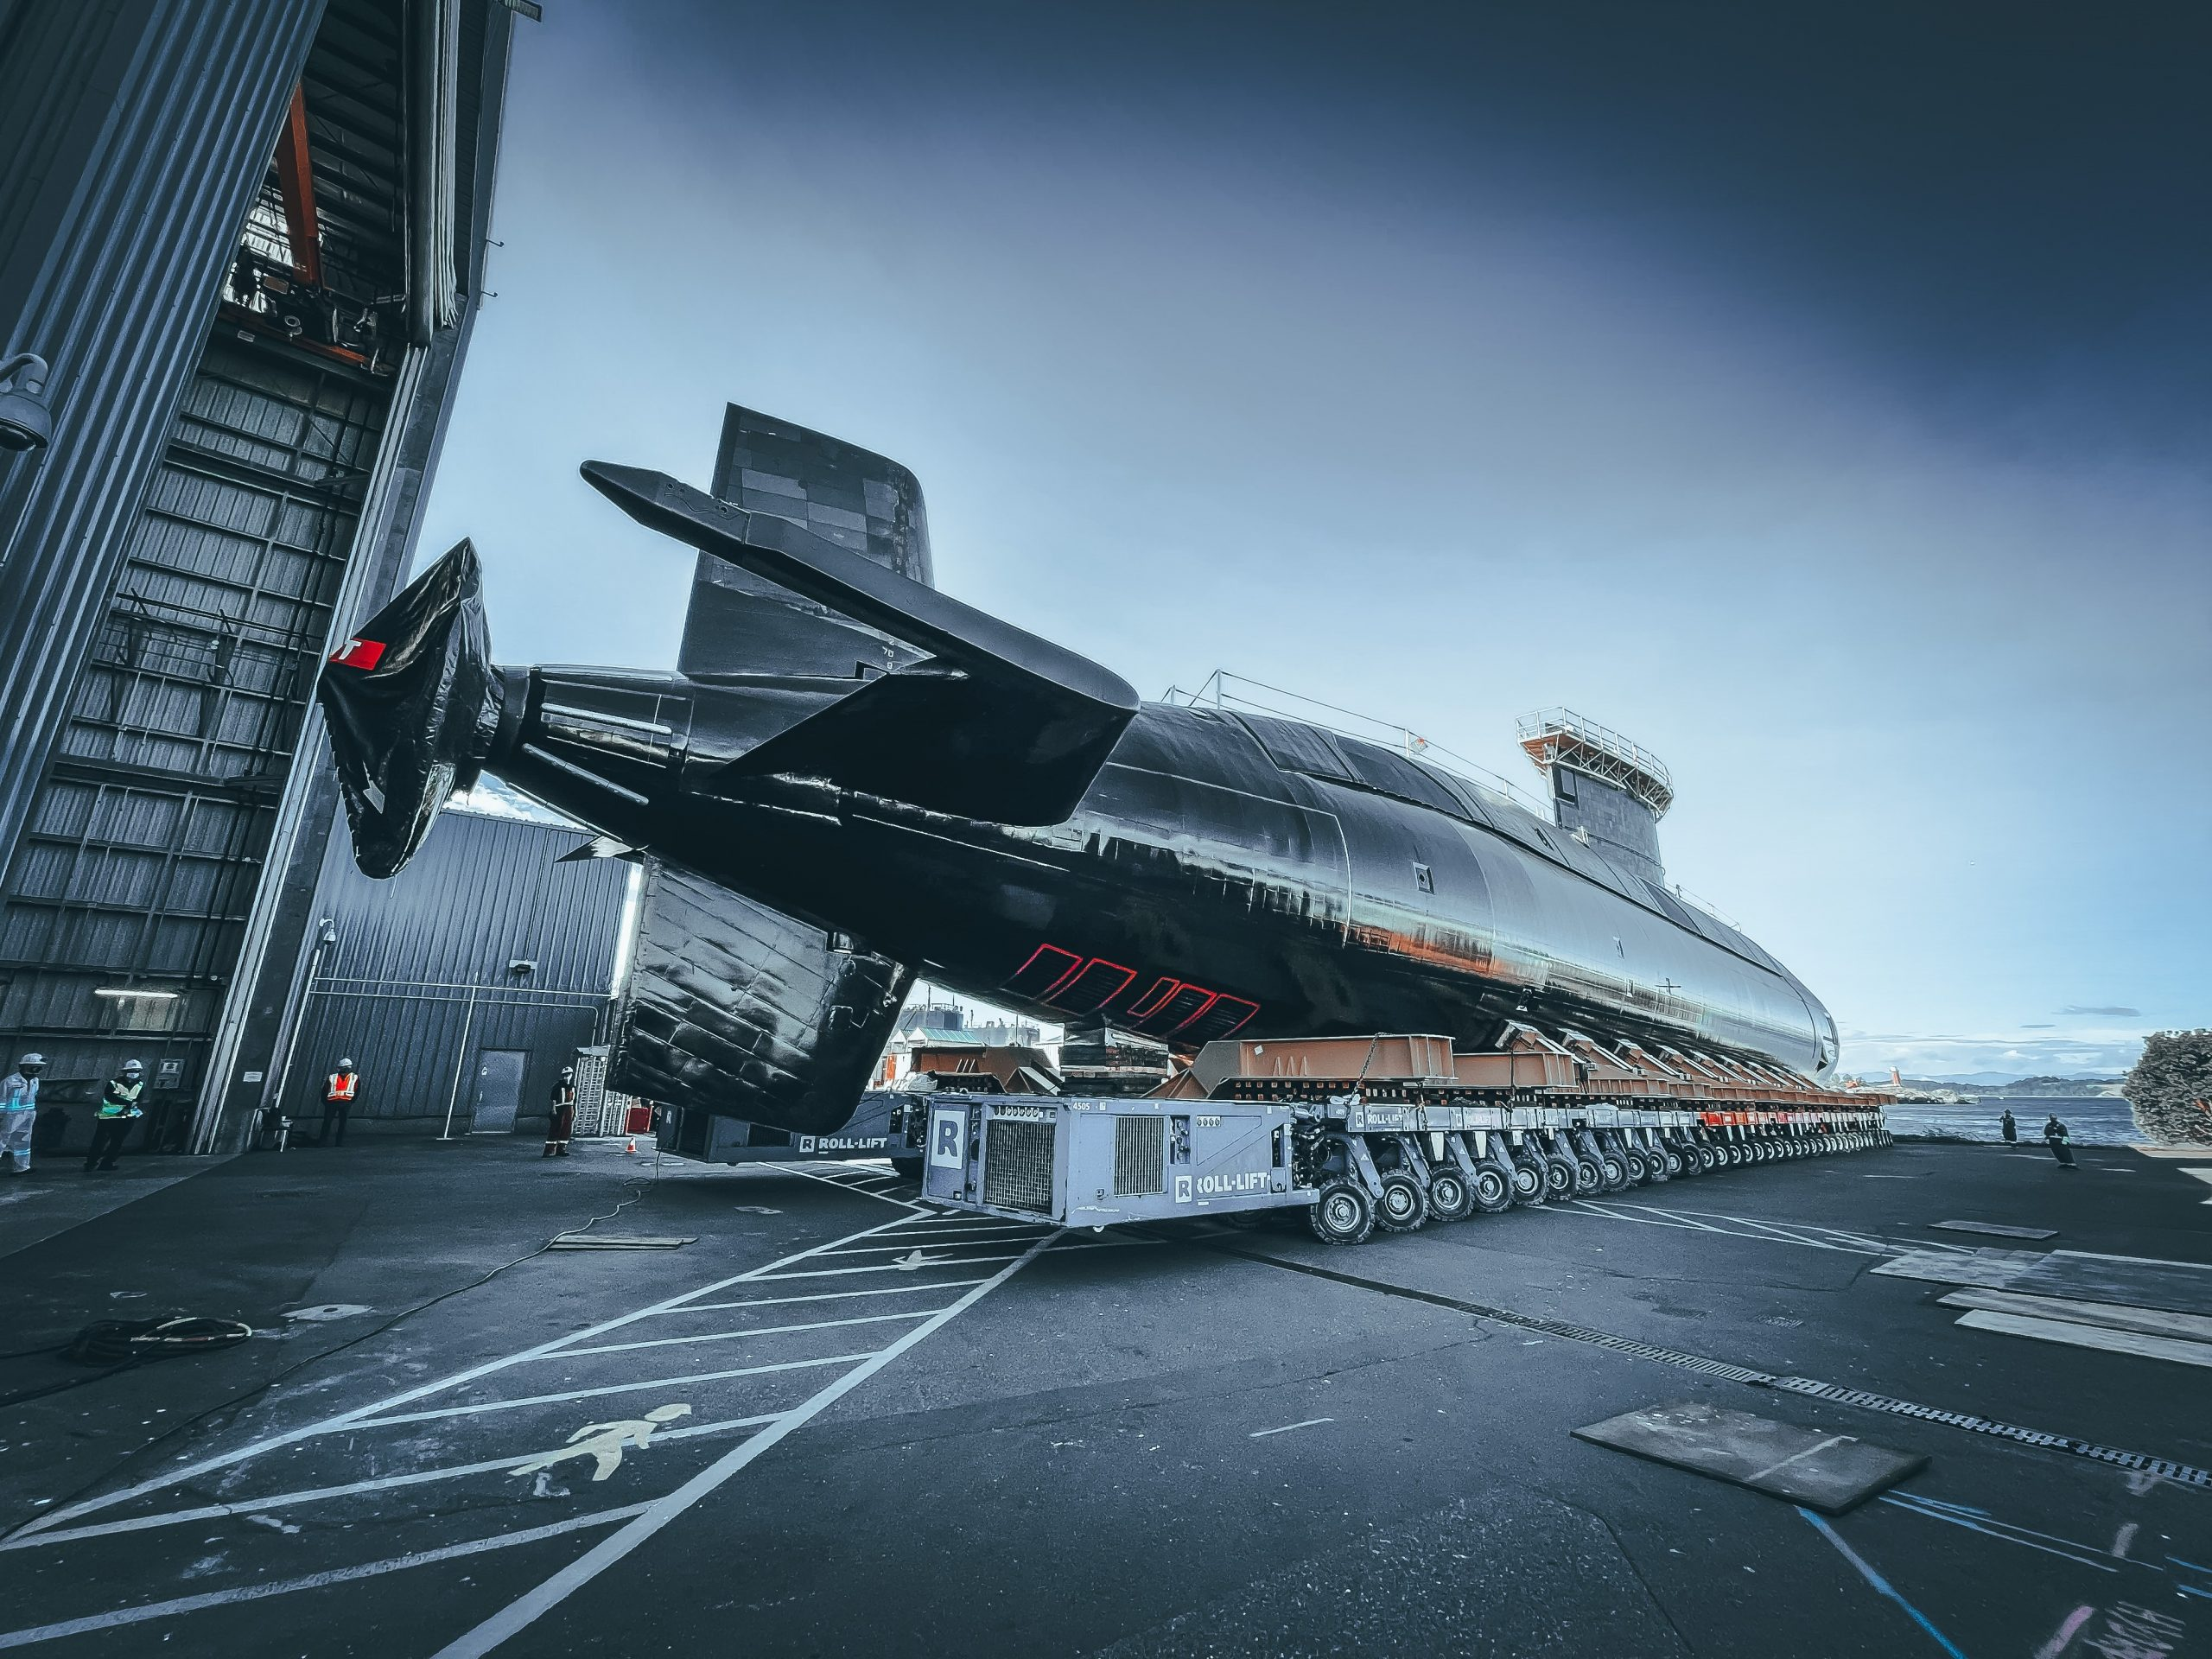 Canada's most modern submarine returns to the water